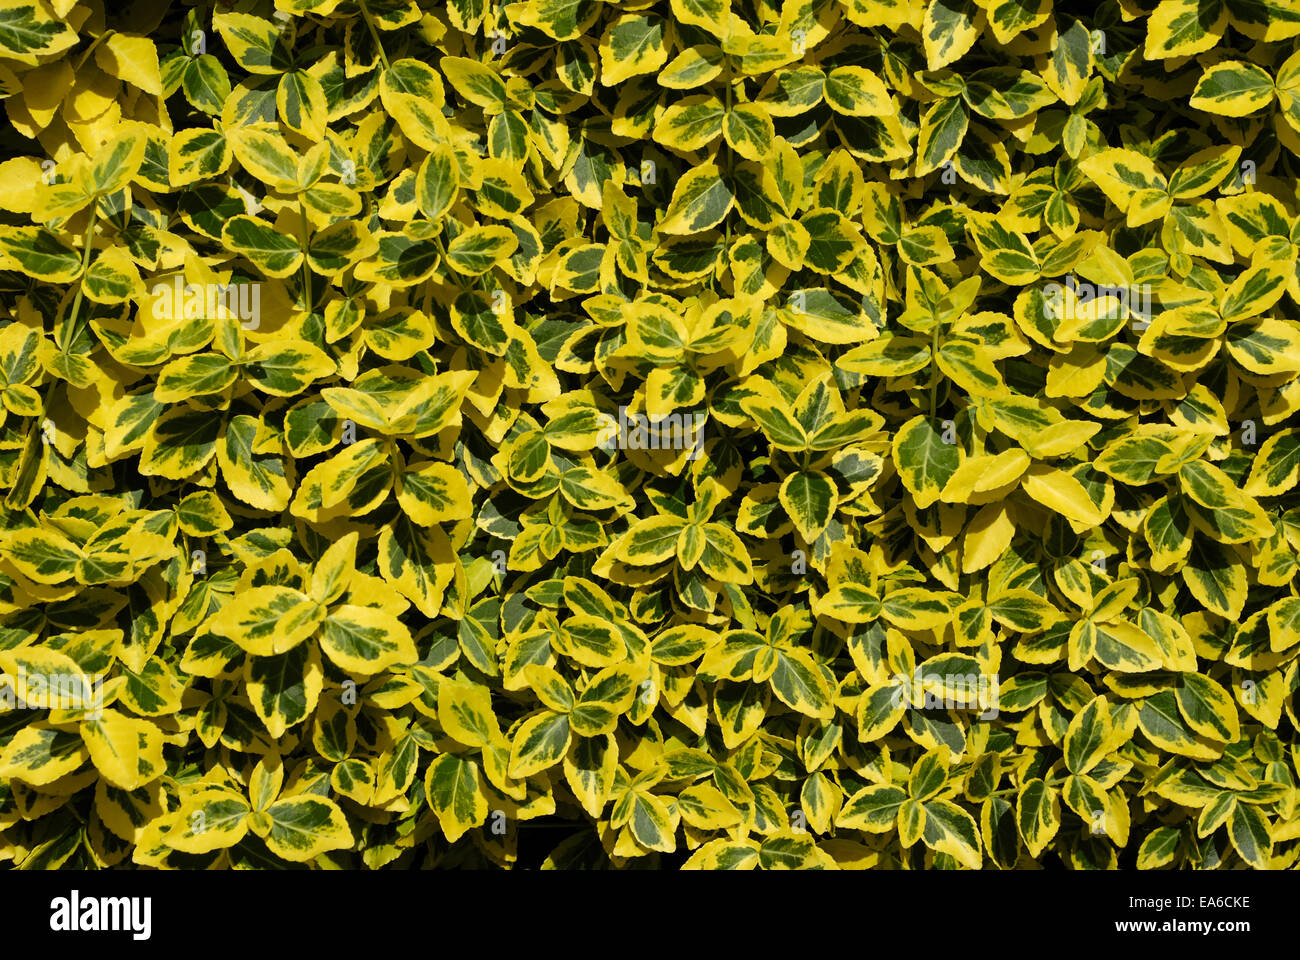 Euonymus fortunei Emerald n Gold - Stock Image